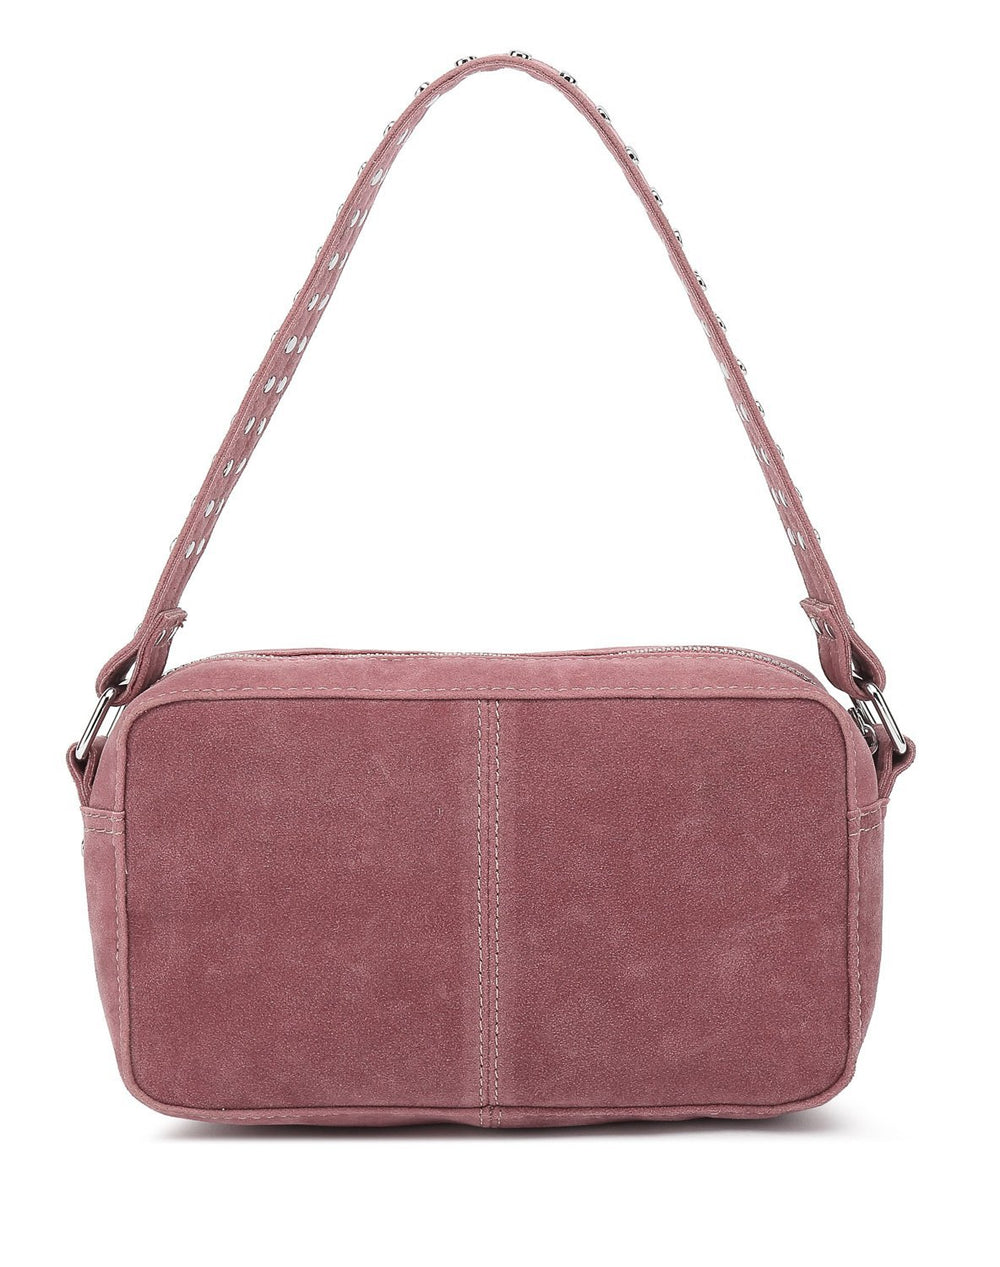 Noella Celina crossover bag dark lavender - Online-Mode